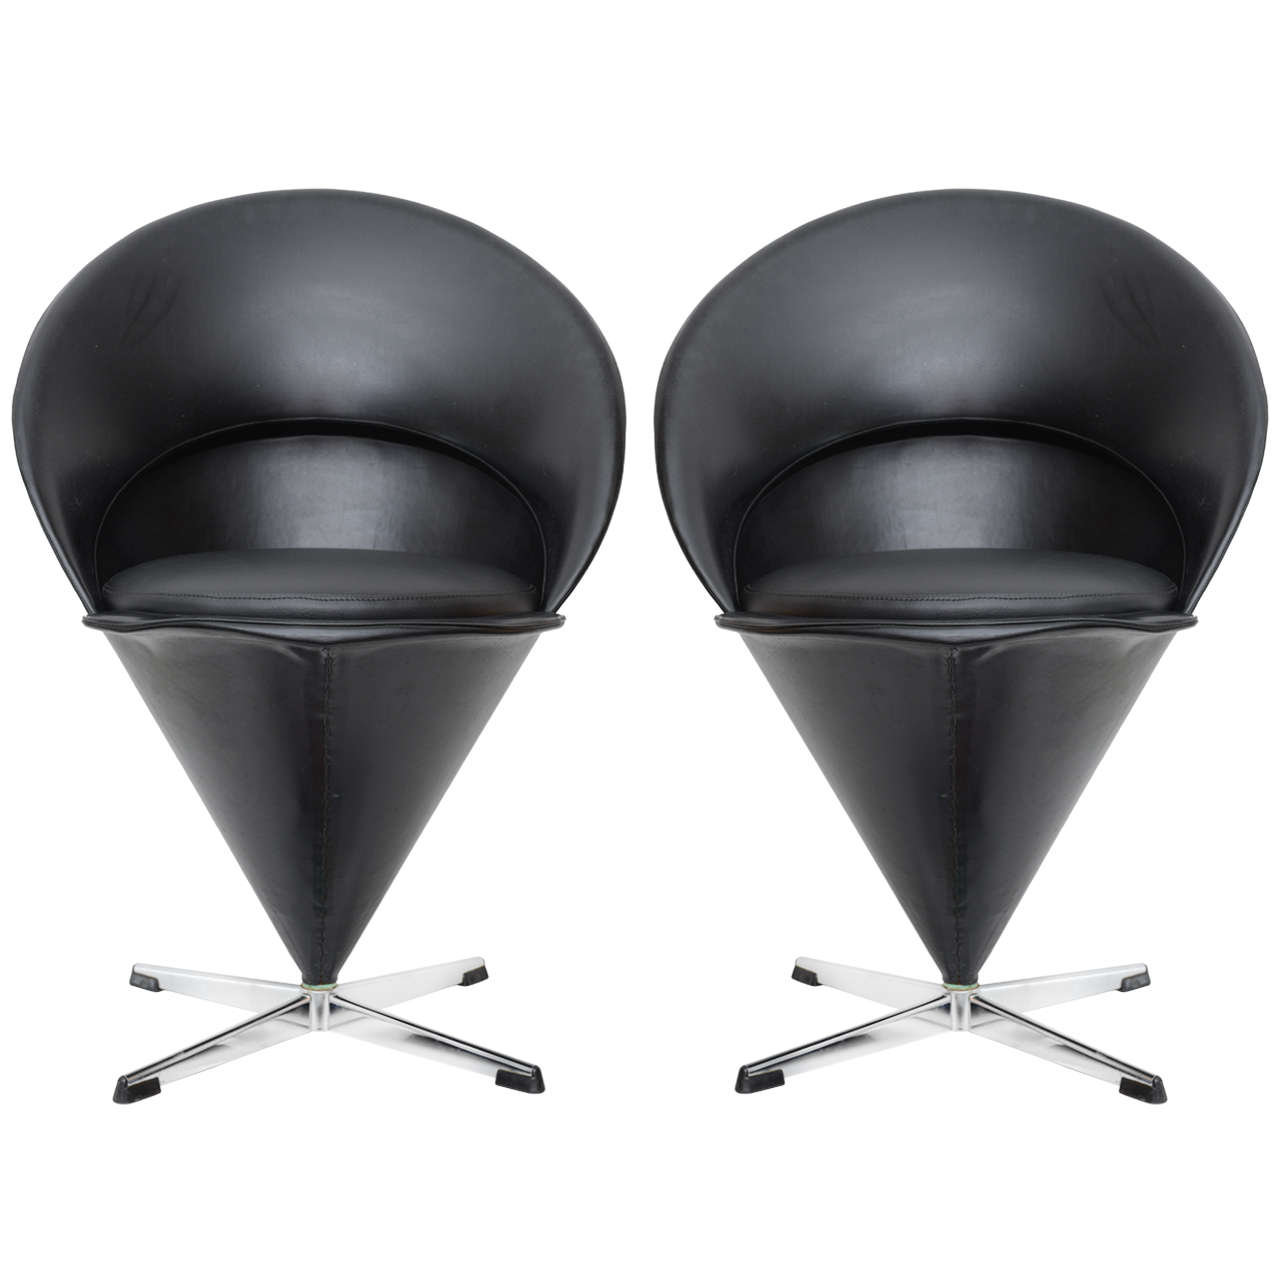 Original Mid Century Modern Verner Panton Cone Chairs At